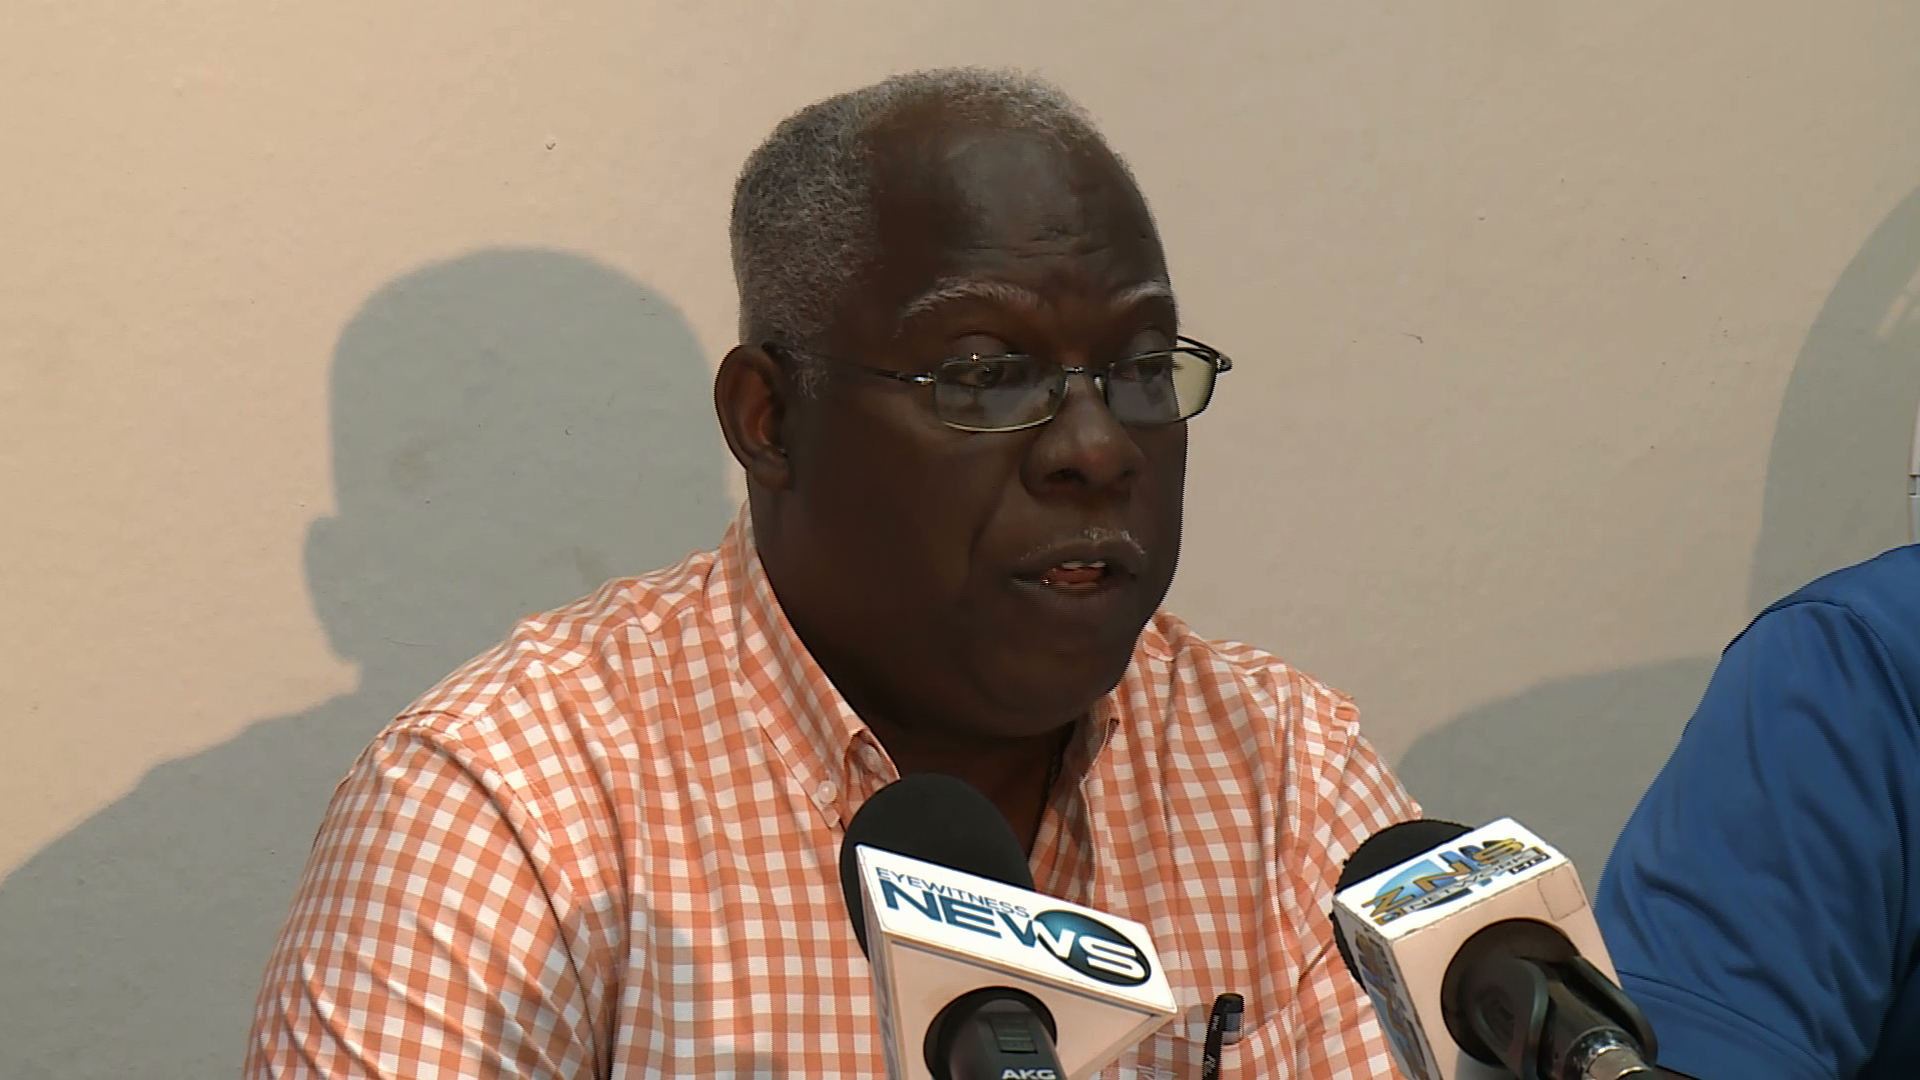 JCNP president to sue for defamation